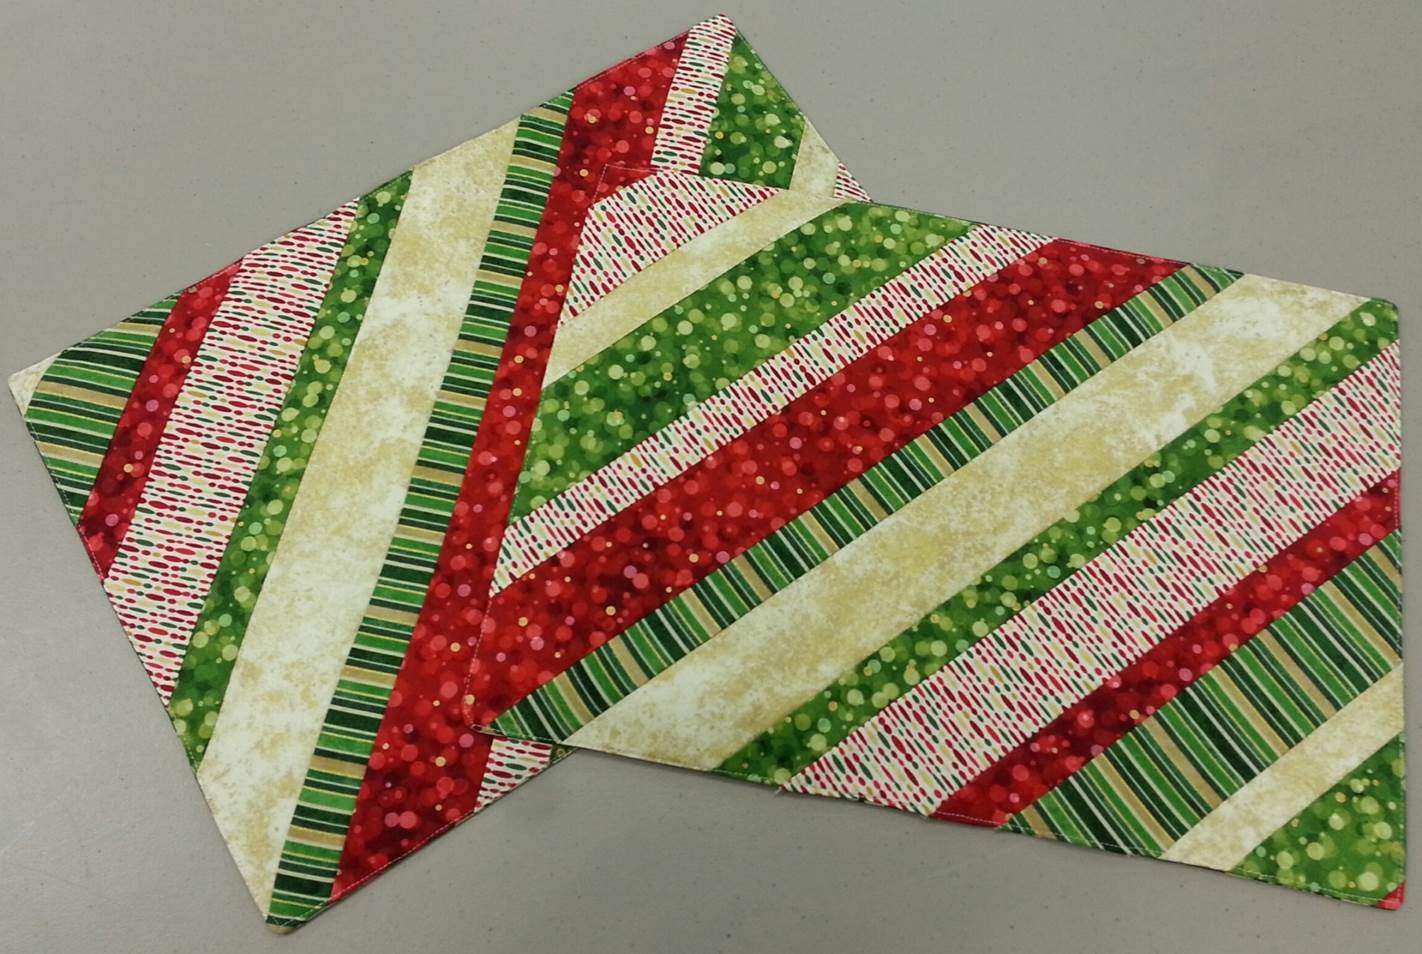 12 Days of Christmas Series - Day 10 - Quilt As You Go ...